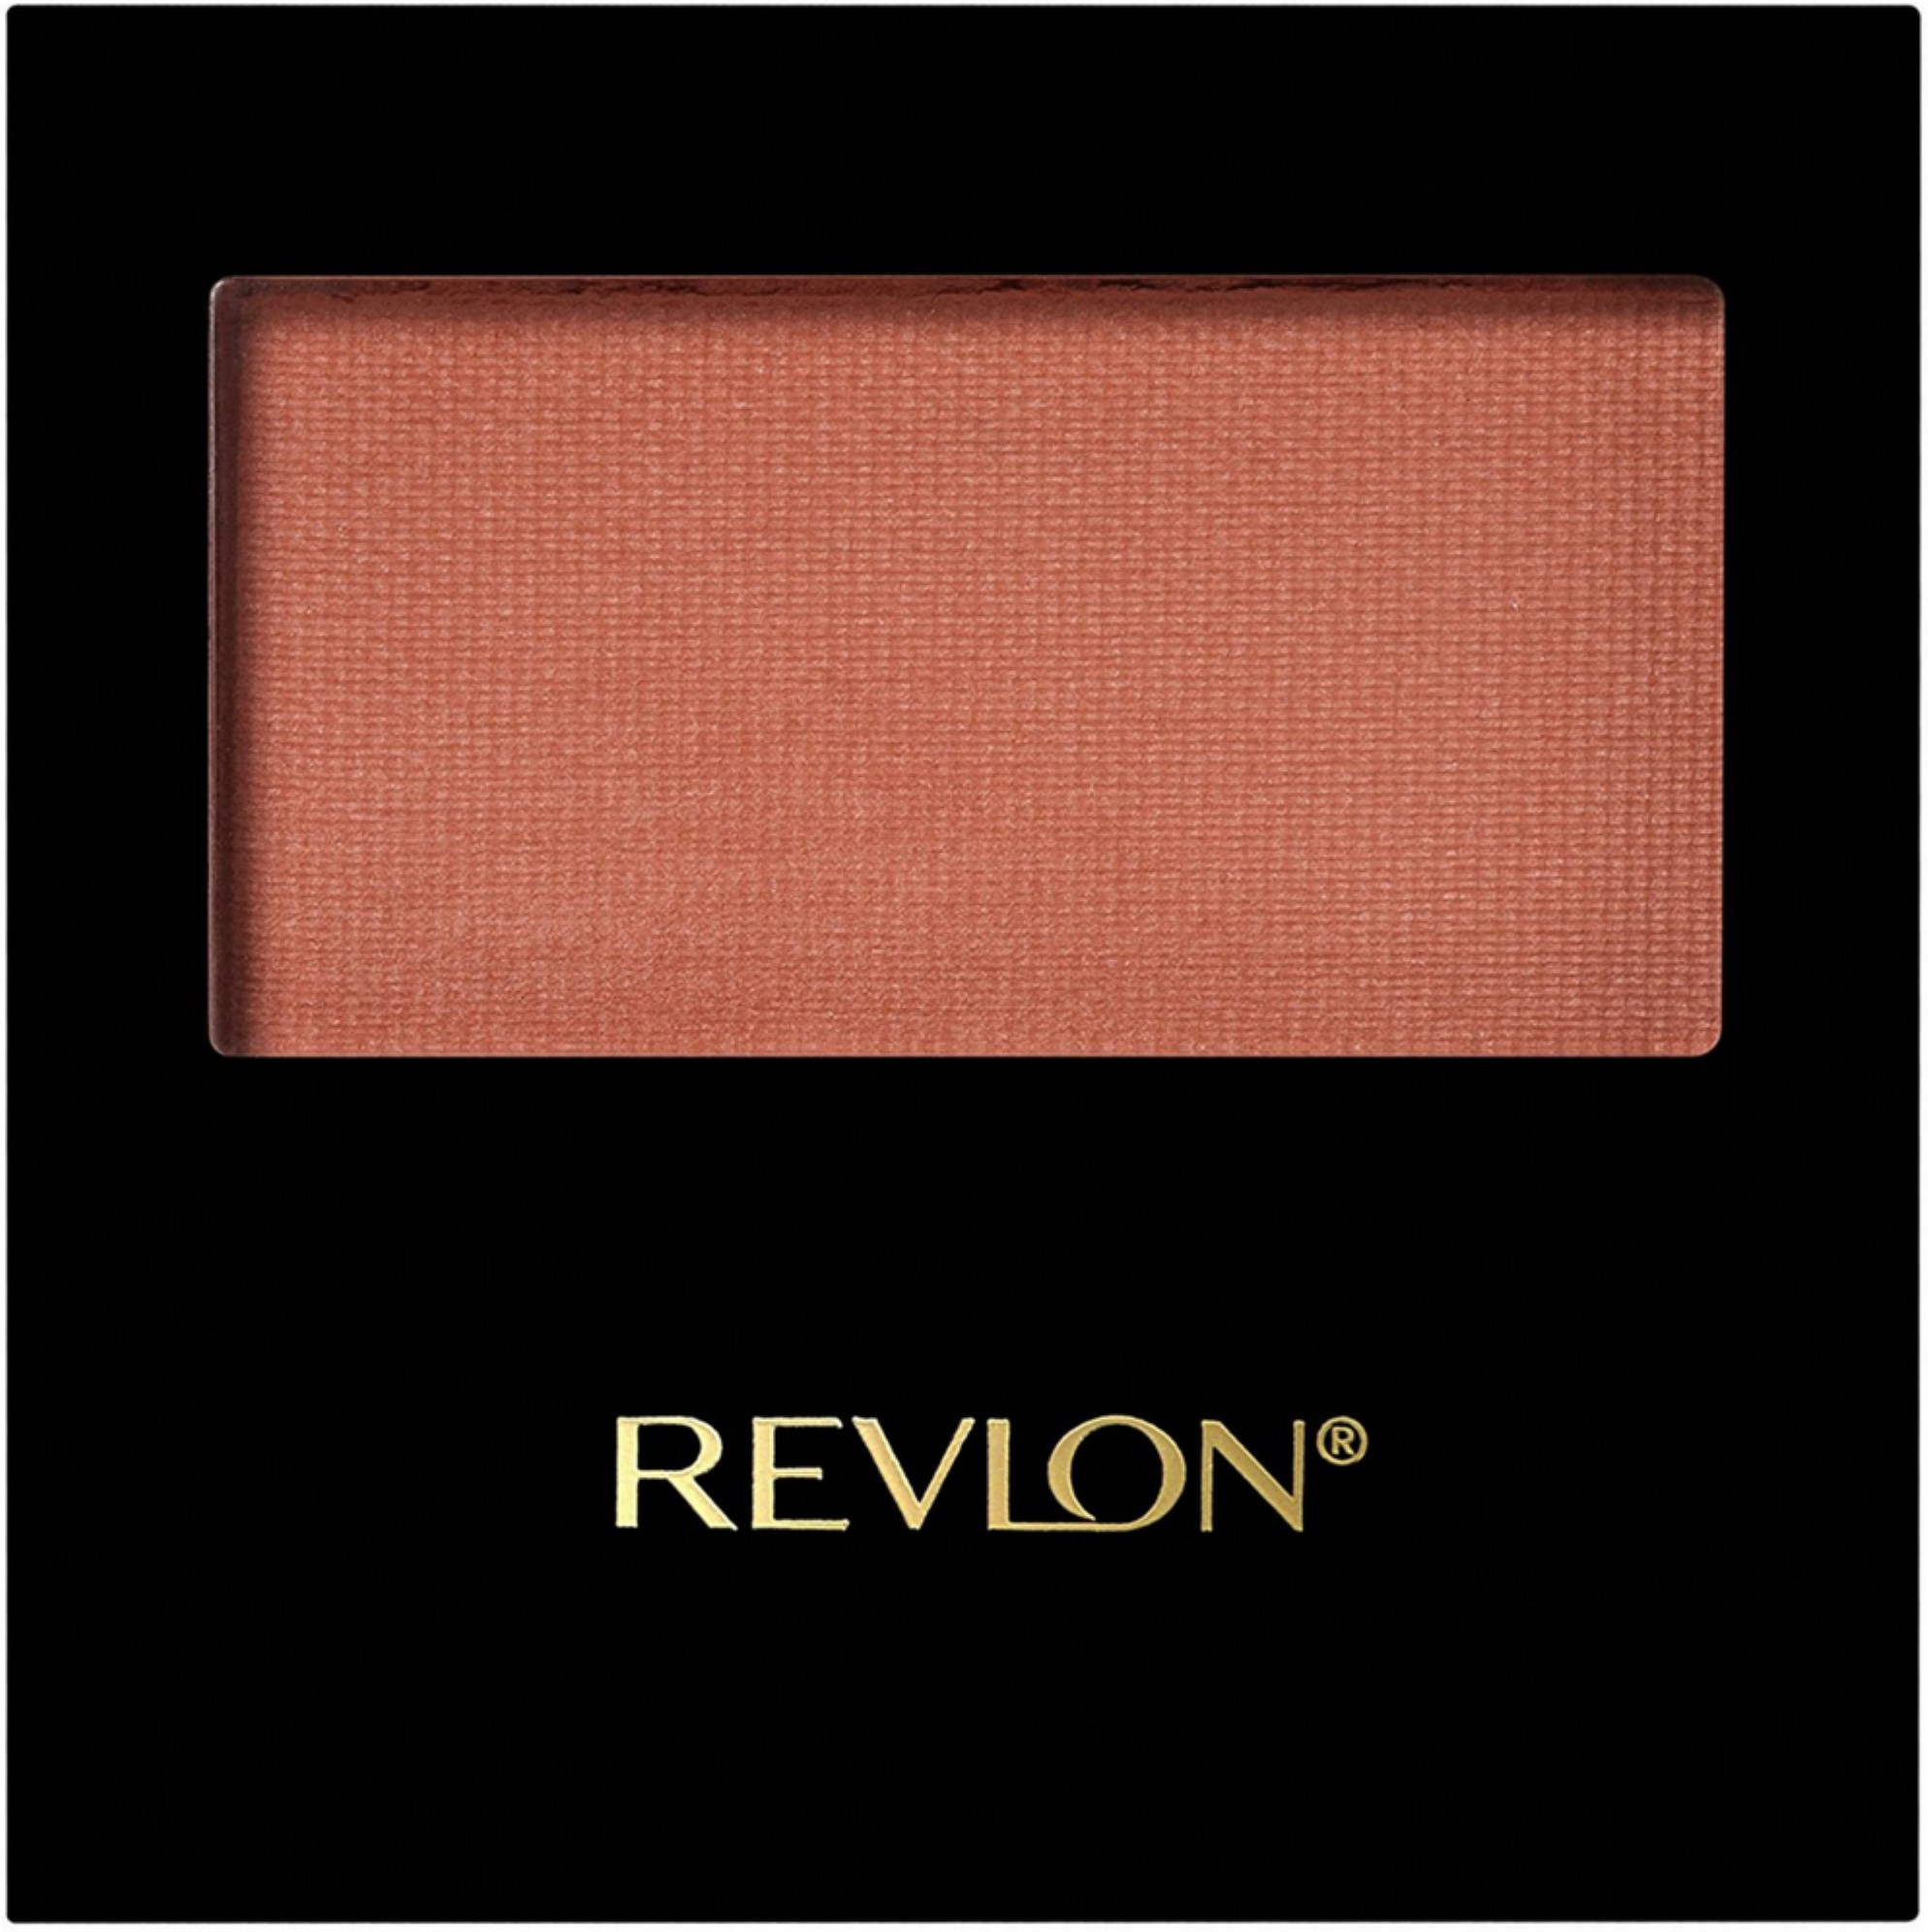 Revlon Powder Blush, Mauvelous, 0.17 Oz